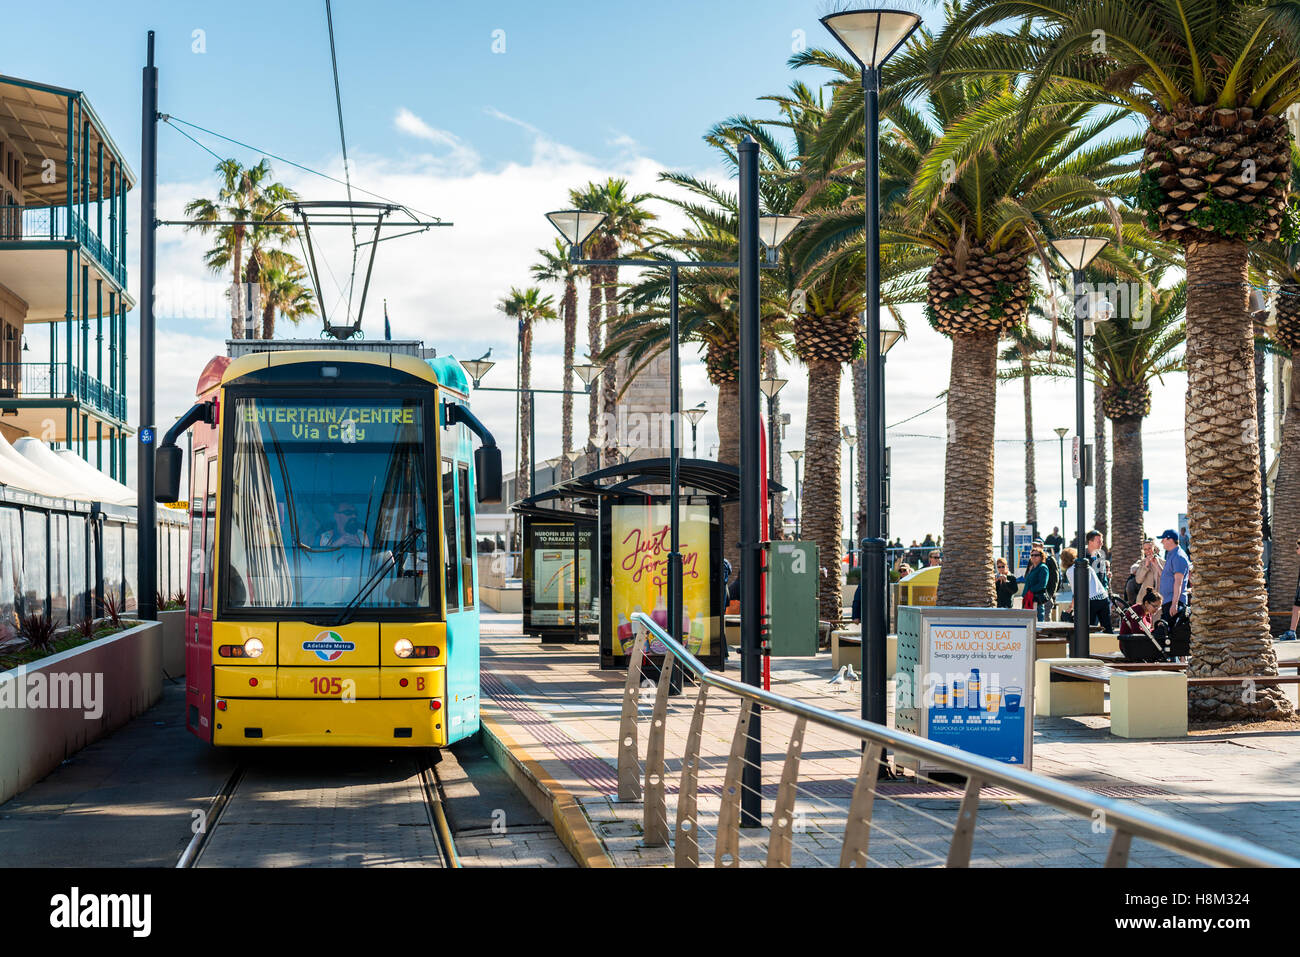 Adelaide, Australia - August 16, 2015: Tram at Moseley Square stop ready to depart towards Adelaide city. - Stock Image